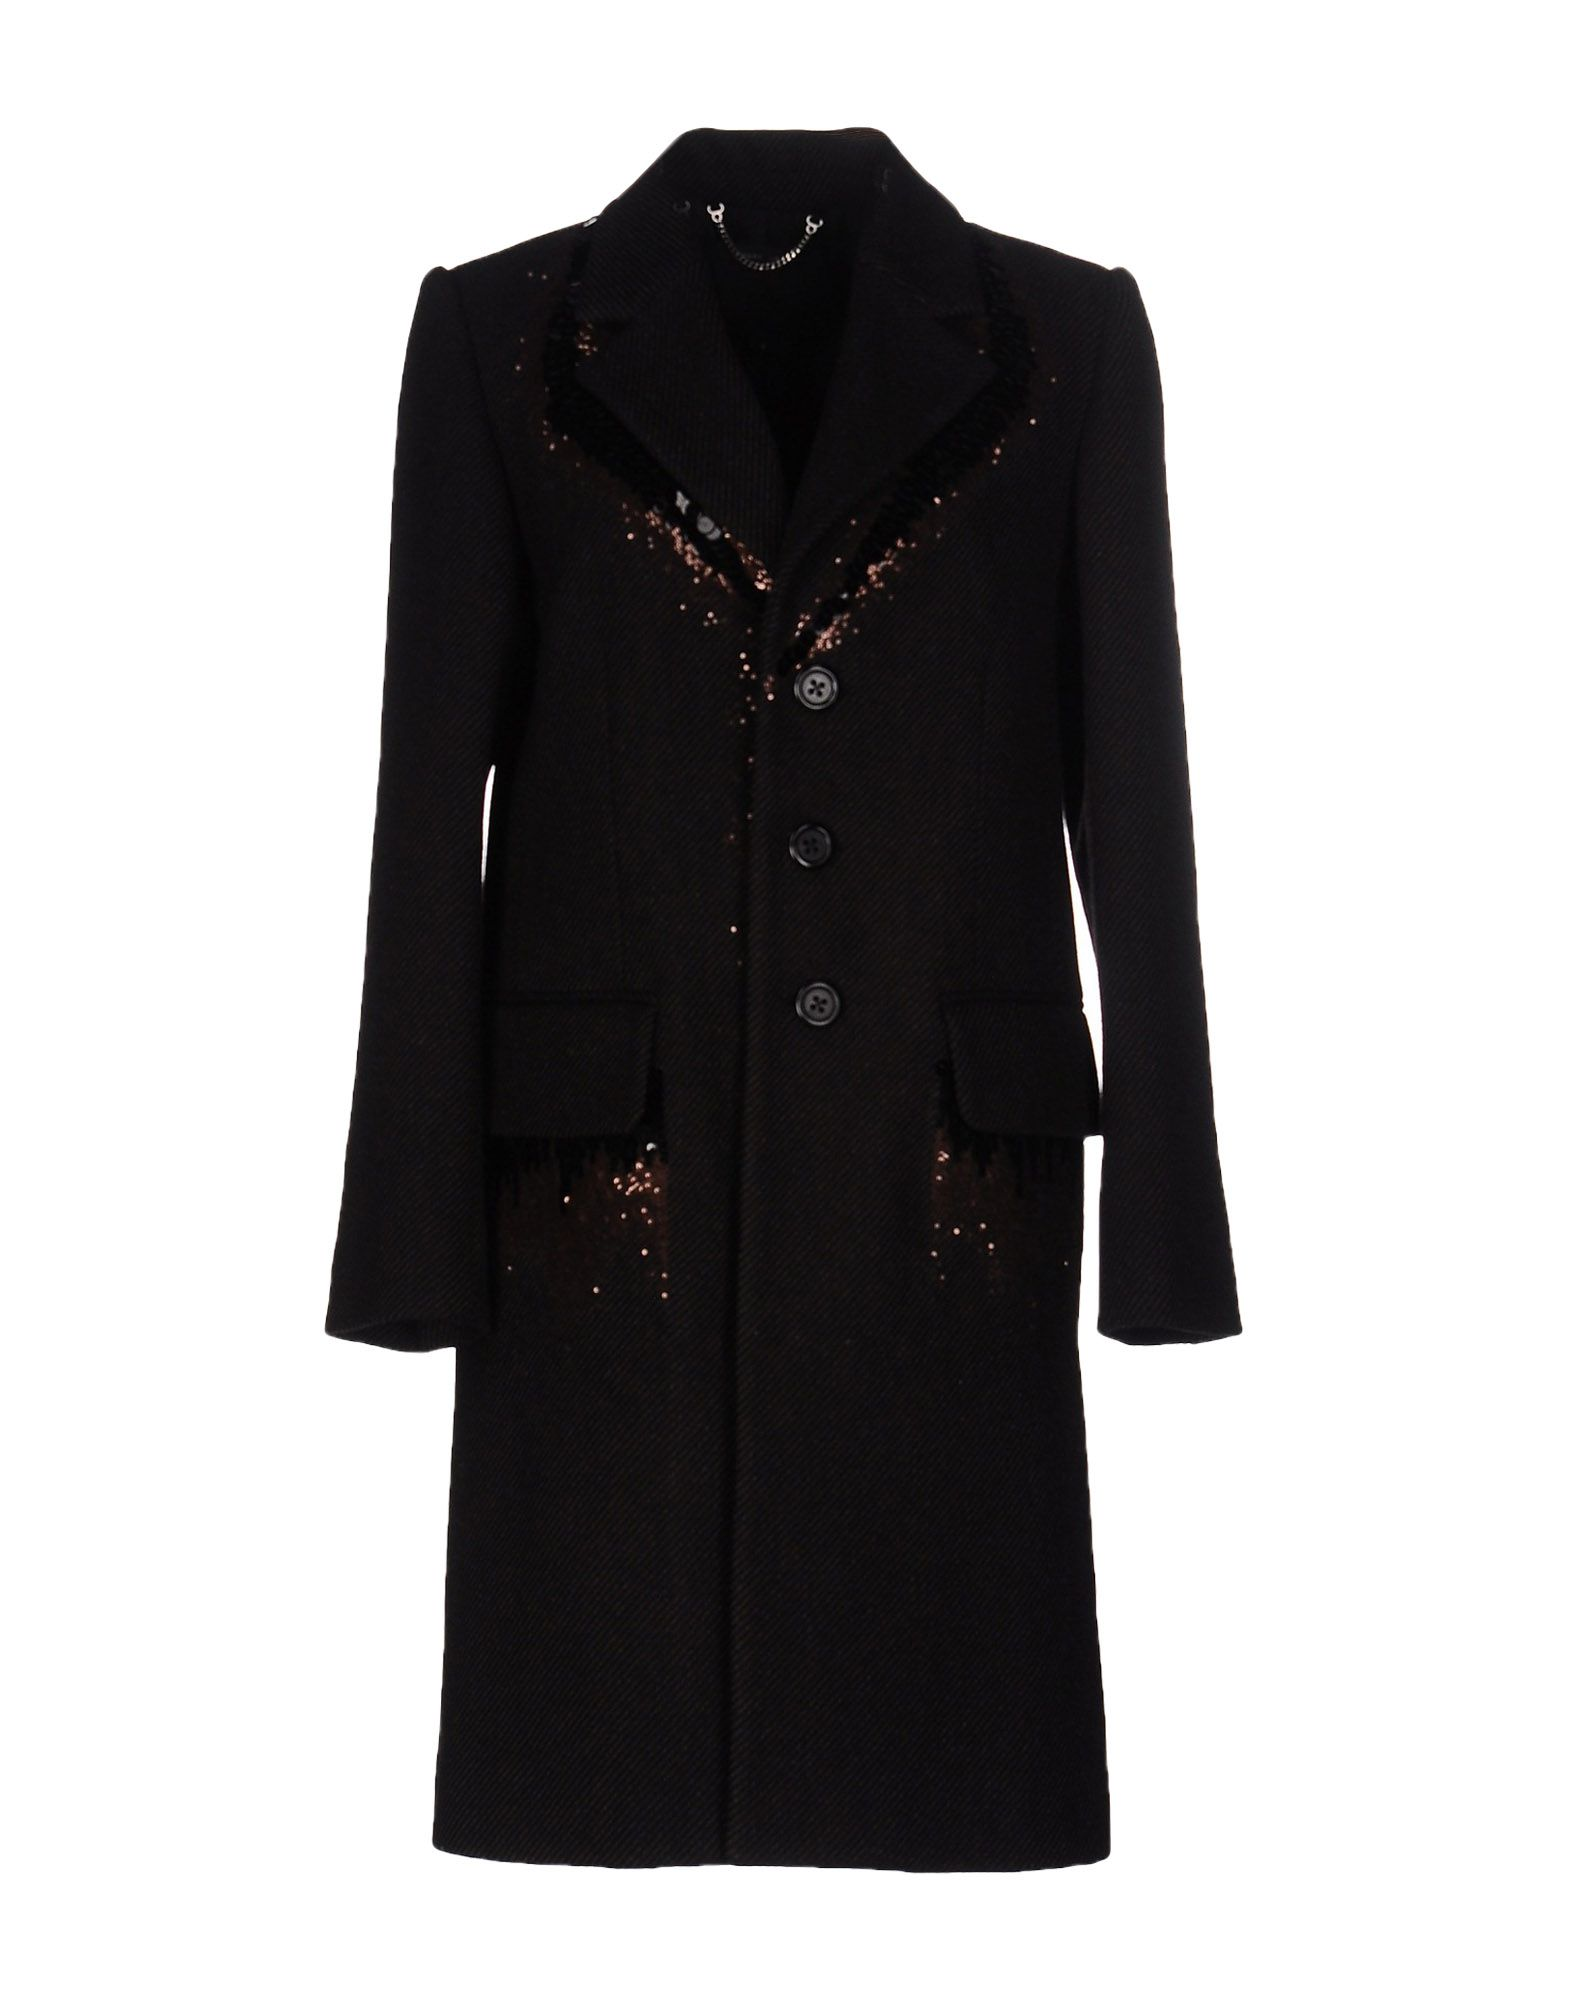 marc jacobs female marc jacobs coats